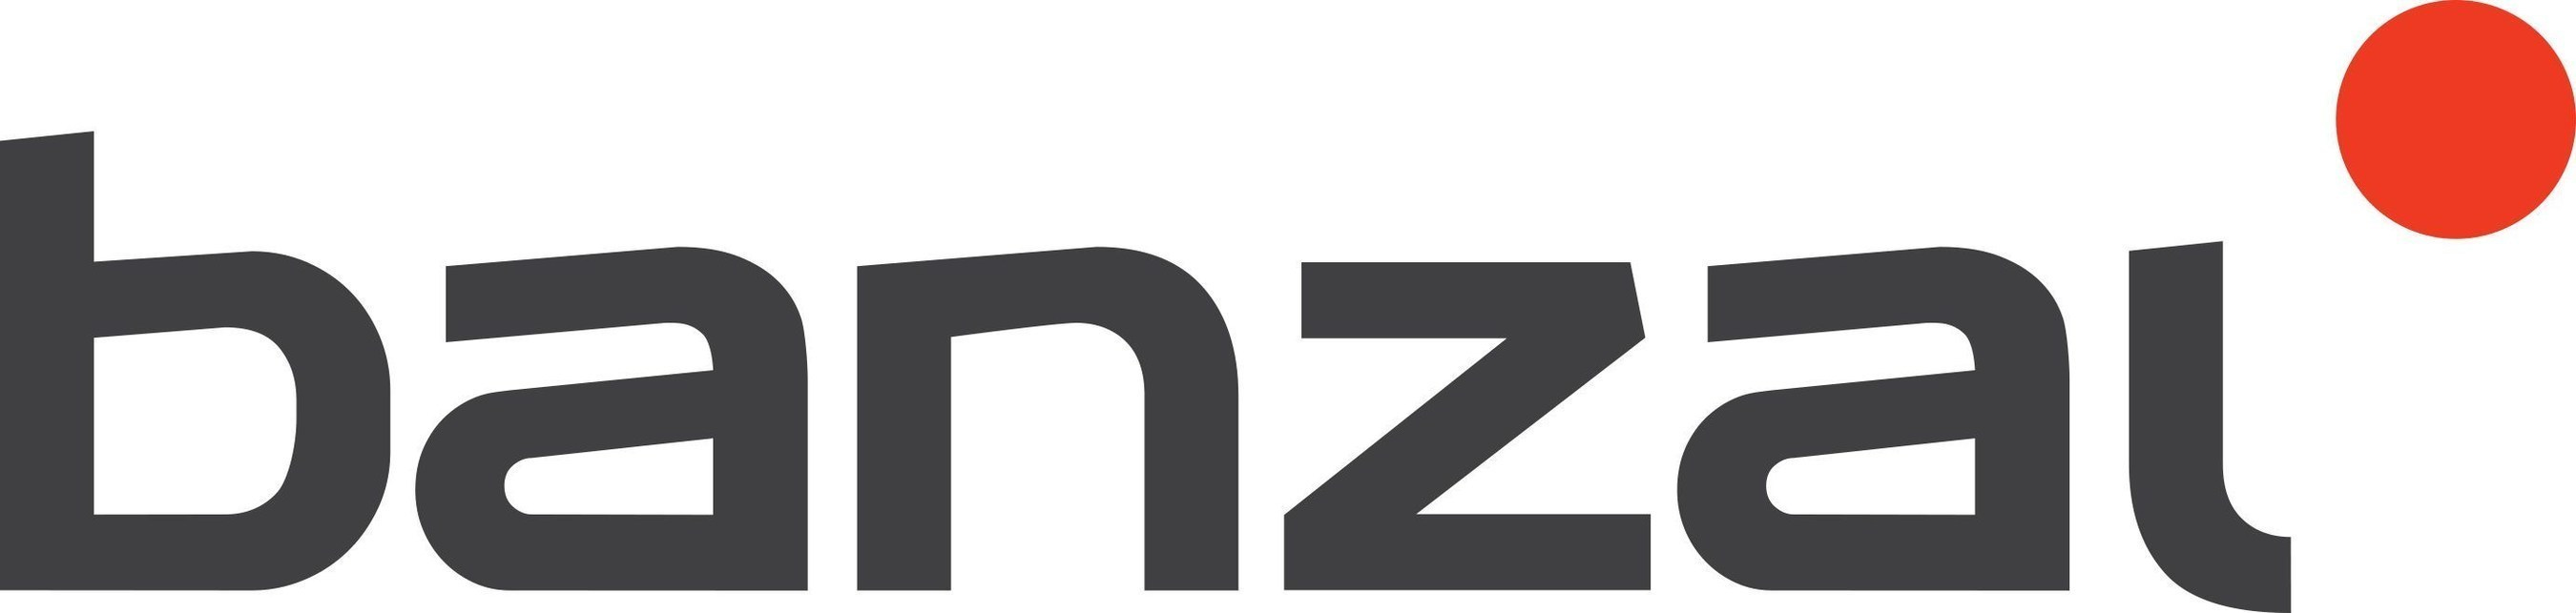 Banzai: GMV Up By 25% and Revenues Up By 20% in H1 2016